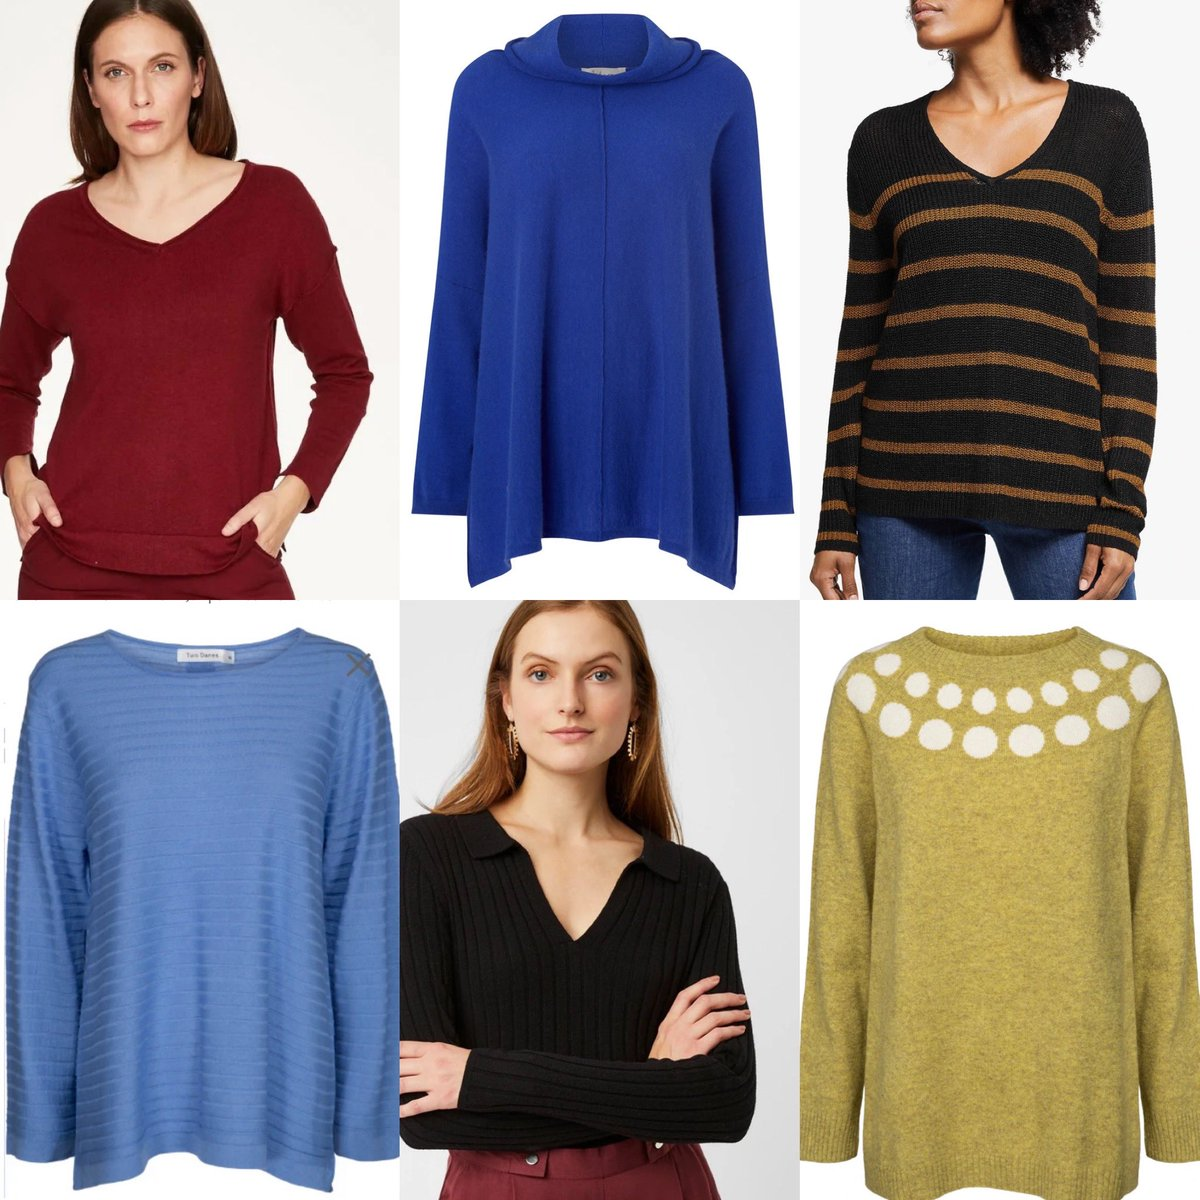 ✨ Treat yourself to a quality knit in the Sedici Sale ✨ They're going quick!   🌎   #Knitwear #sweater #jumper #sale #Sedici #Seaford #Sussex #EastSussex #Fashion #Boutique #shoplocal #shopsmall